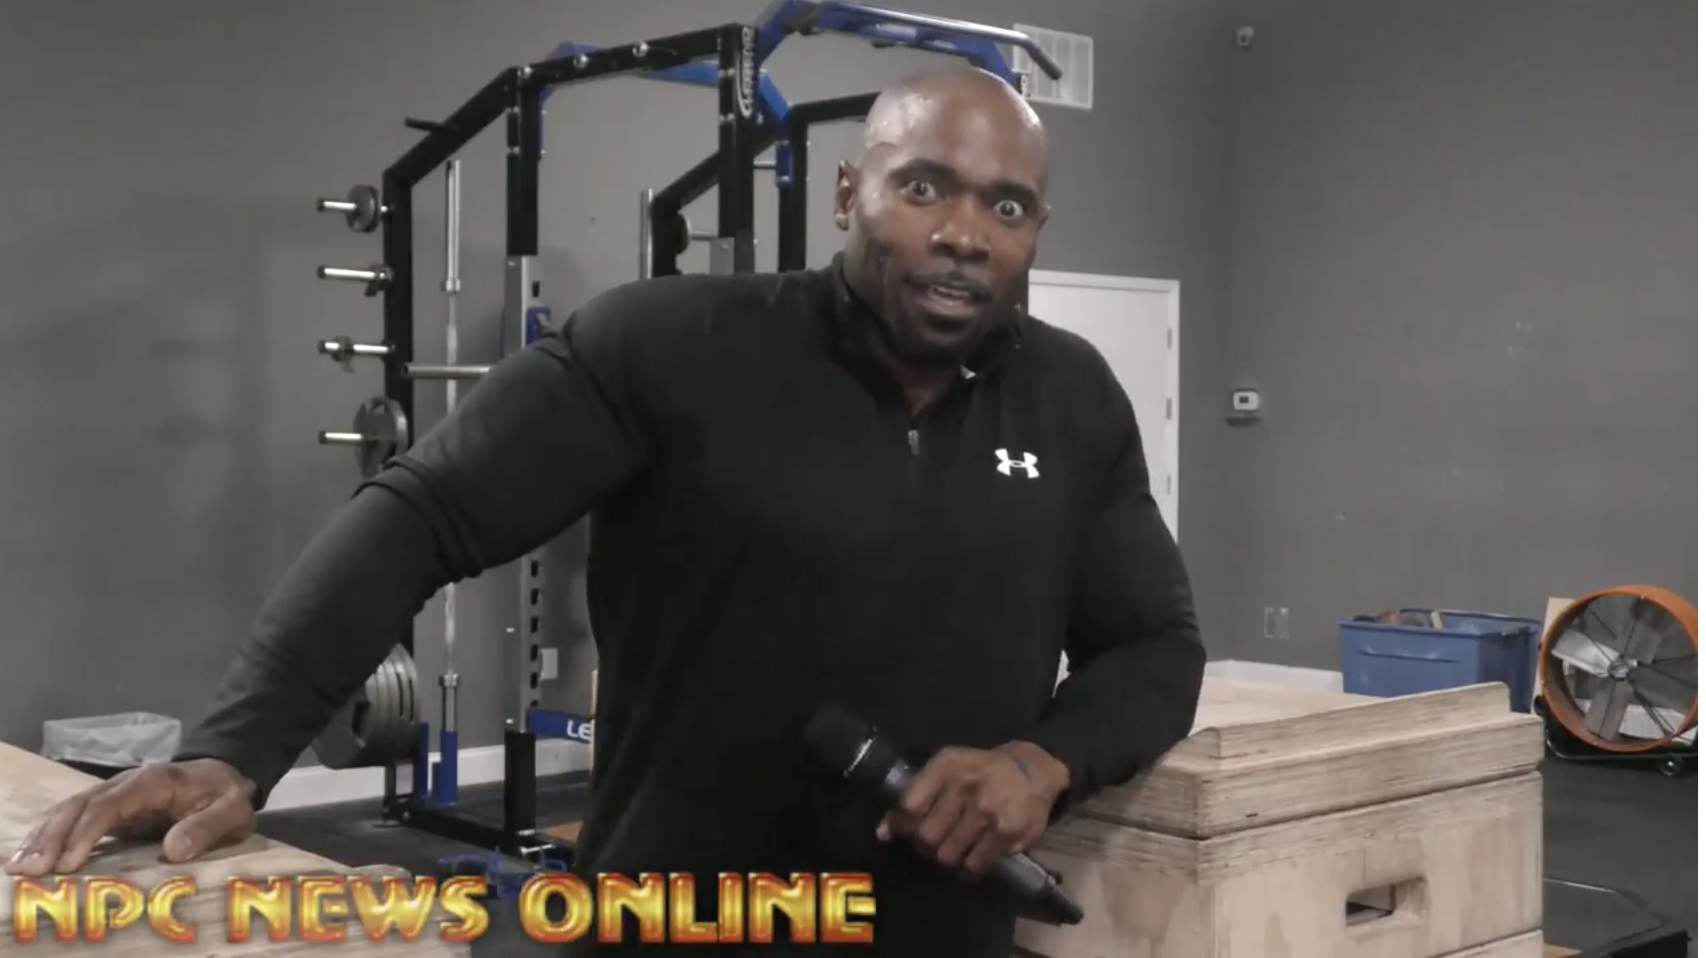 IFBB Pro Lee Banks Video Tip Of The Day